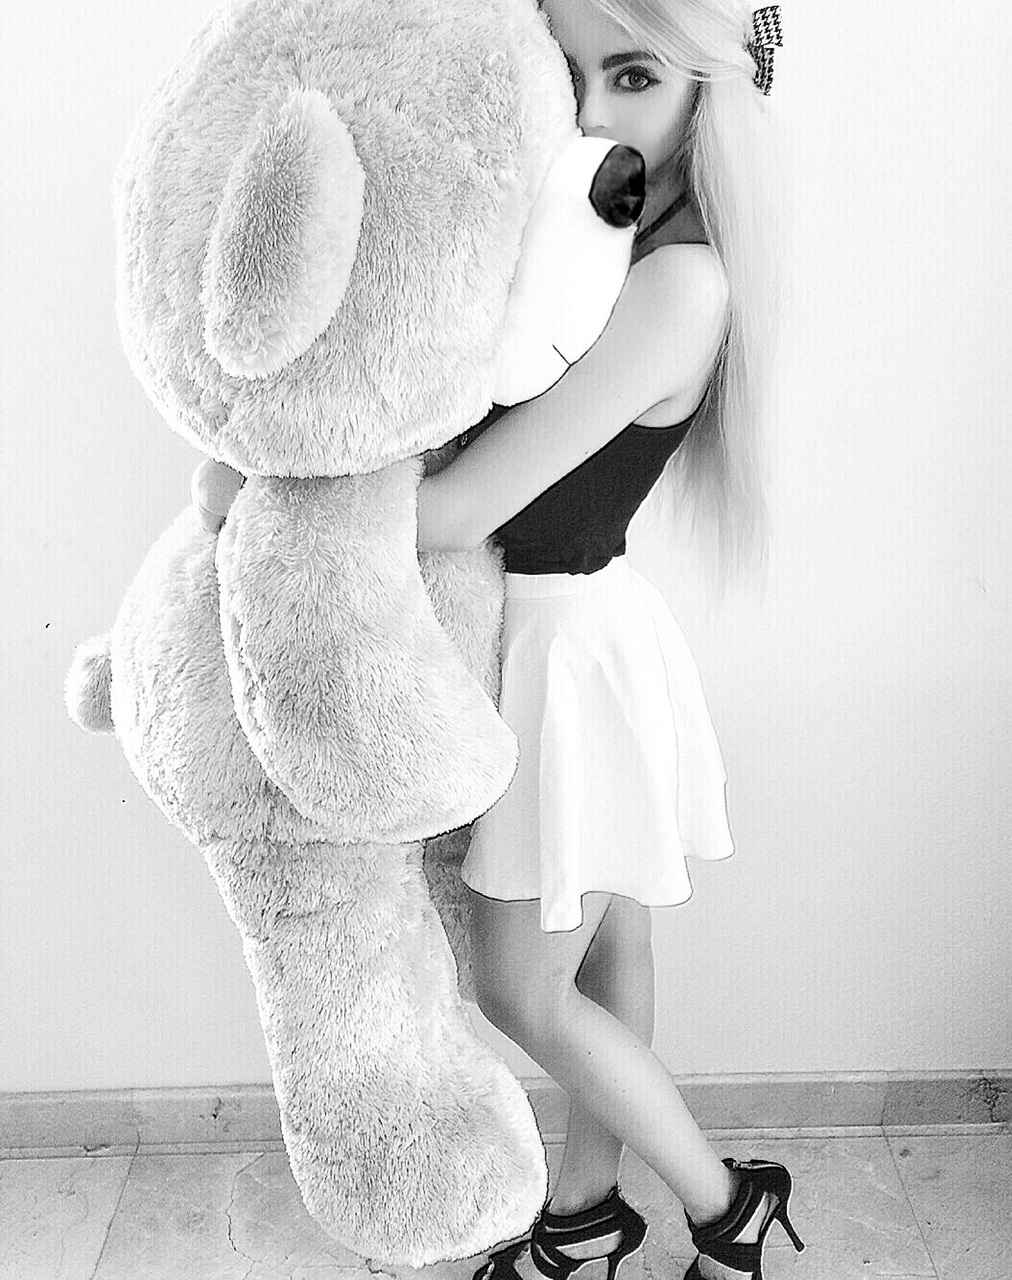 aesthetic, b&w, black and white, blonde, book, bow, fun, gift, hair, high heels, hugging, laugh, long blonde hair, love, makeup, now, present, quote, ribbon, skirt, teddy bear, white skirt, black crop top, cute gift, First Set on Favim.com